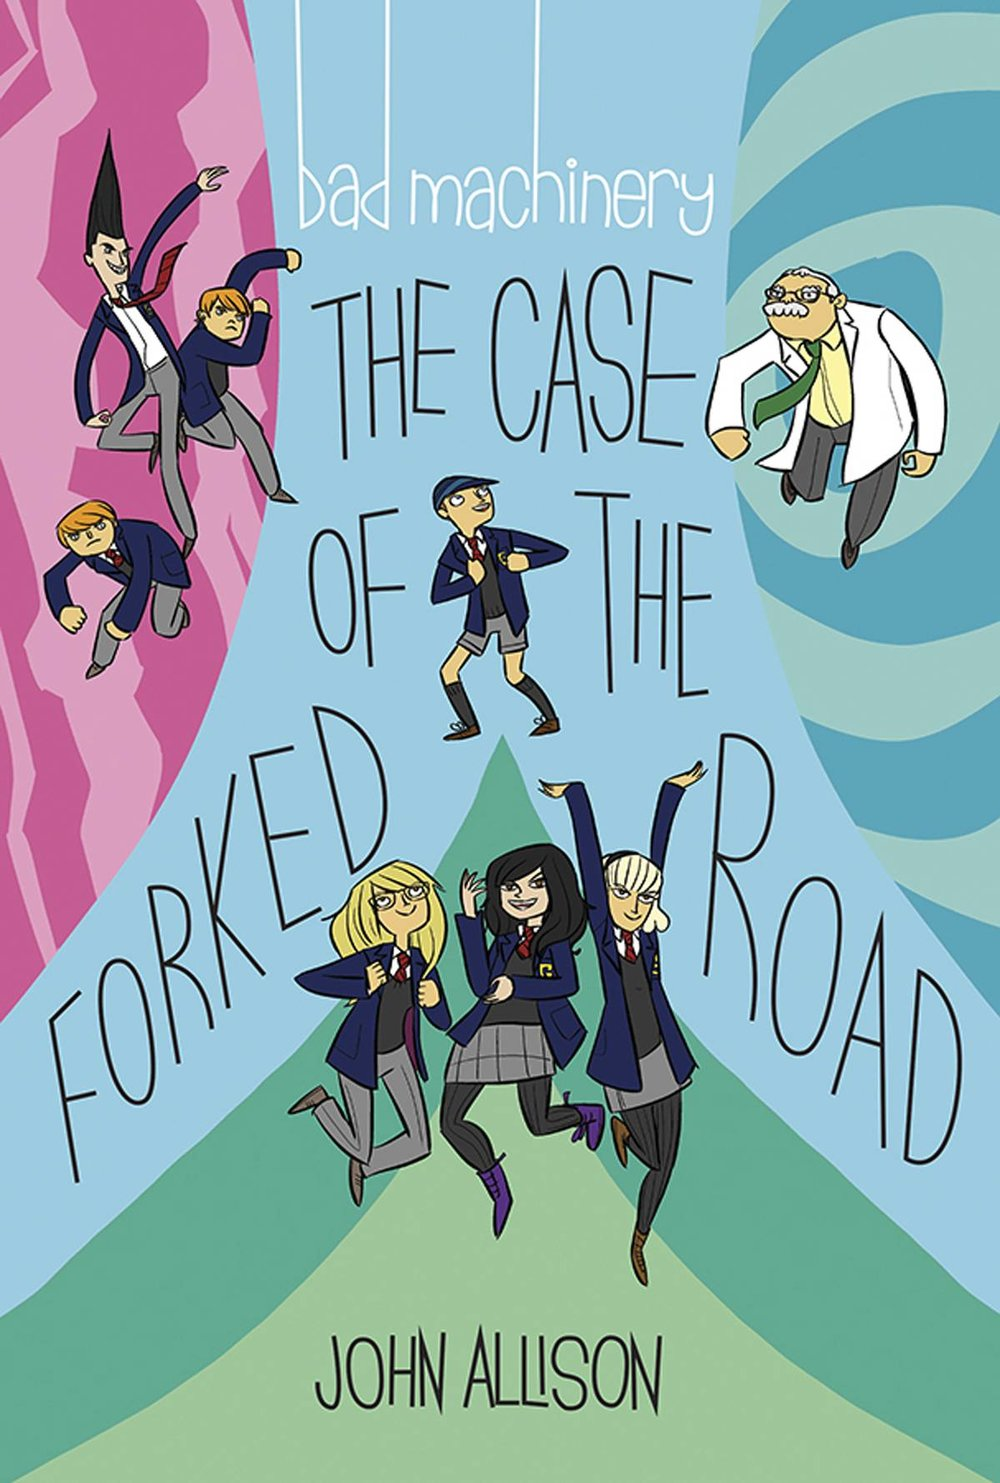 BAD MACHINERY GN 7 THE CASE OF THE FORKED ROAD.jpg